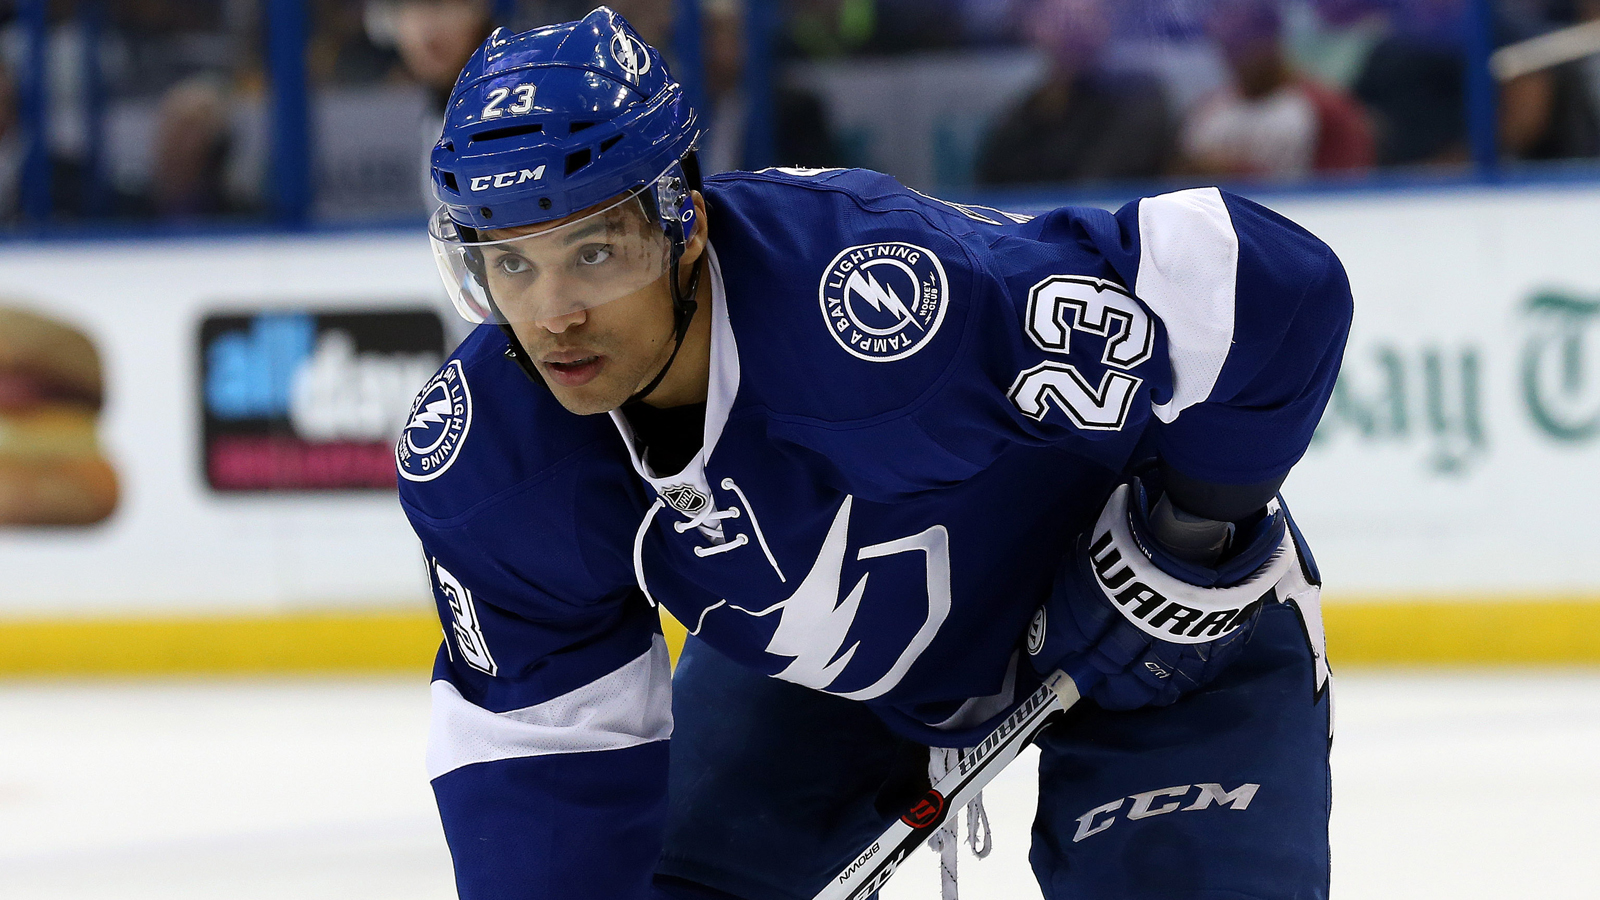 Lightning sign J.T. Brown, Cedric Paquette to 2-year contracts